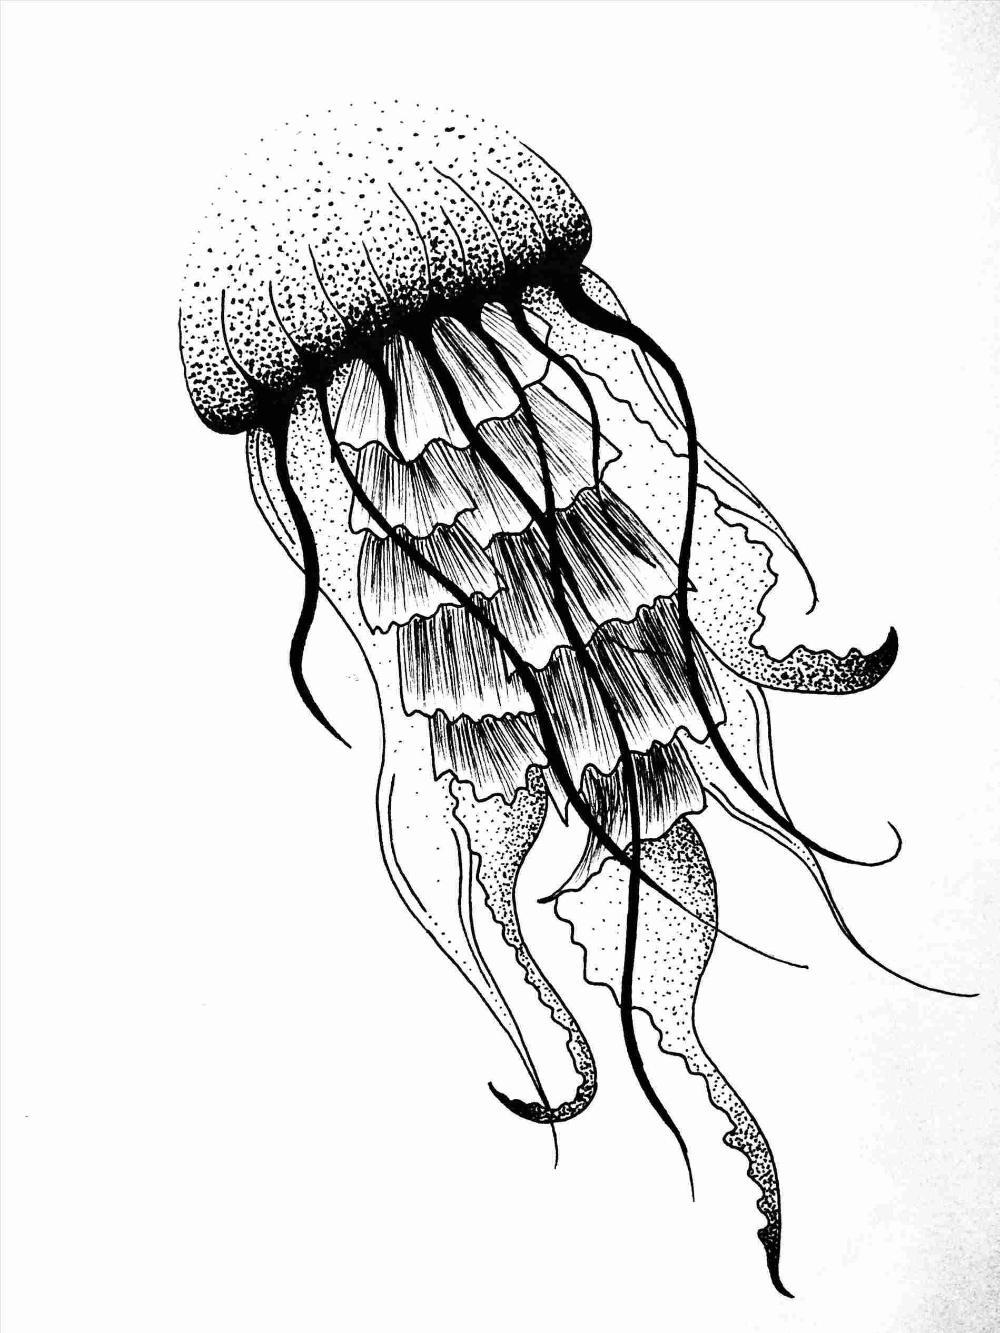 Jellyfish Drawing Easy Gdpicture Us Jellyfish Sketch Jellyfish Drawing Easy Gdpicture Us Jellyfish Sketch Jellyfish Drawing Jellyfish Art Stippling Art